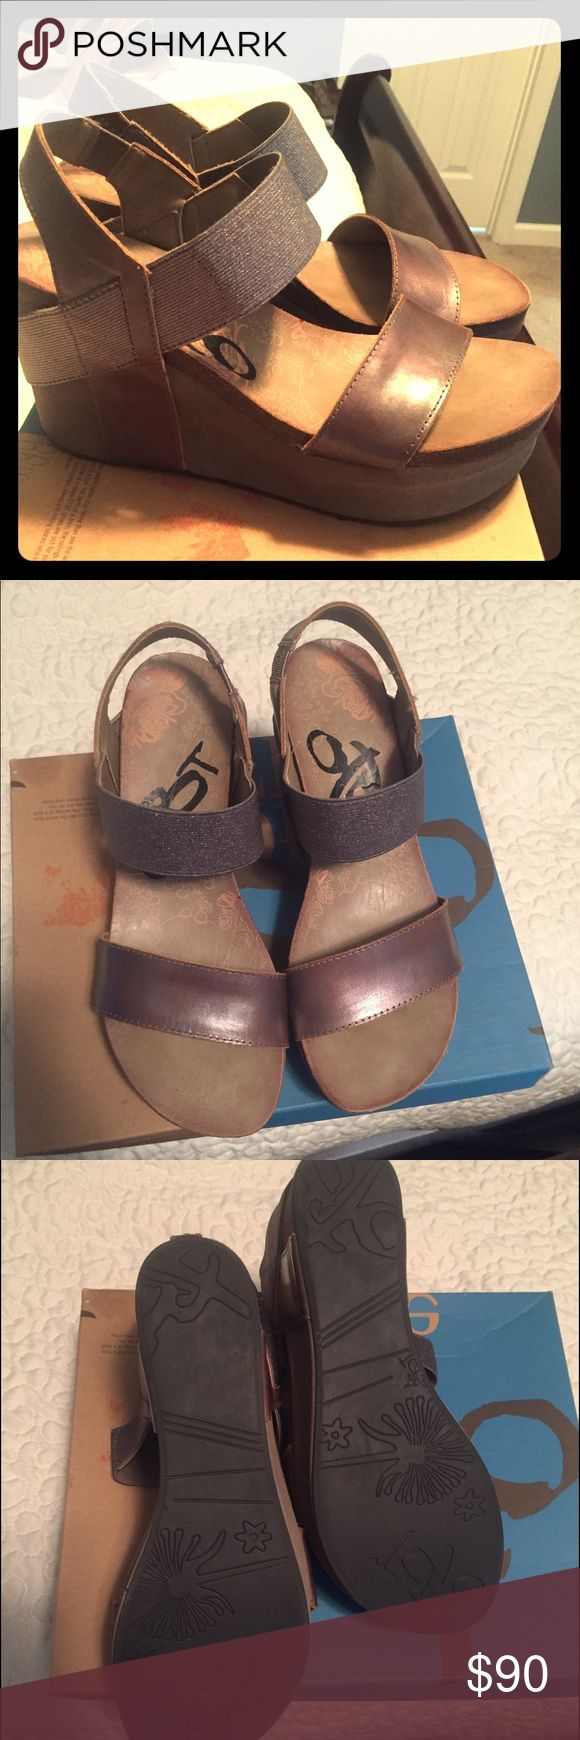 Brand new OTBT wedges/ sale or possible trade Bushnell pewter in color / would accept possible trade / if interested let me know what cha got . No need to keep these any longer if I'm not gonna wear them .. had them for like 2 years and still brand new lol .. or trade for new or like new condition chacos . 8 to 8.5 otbt Shoes Wedges